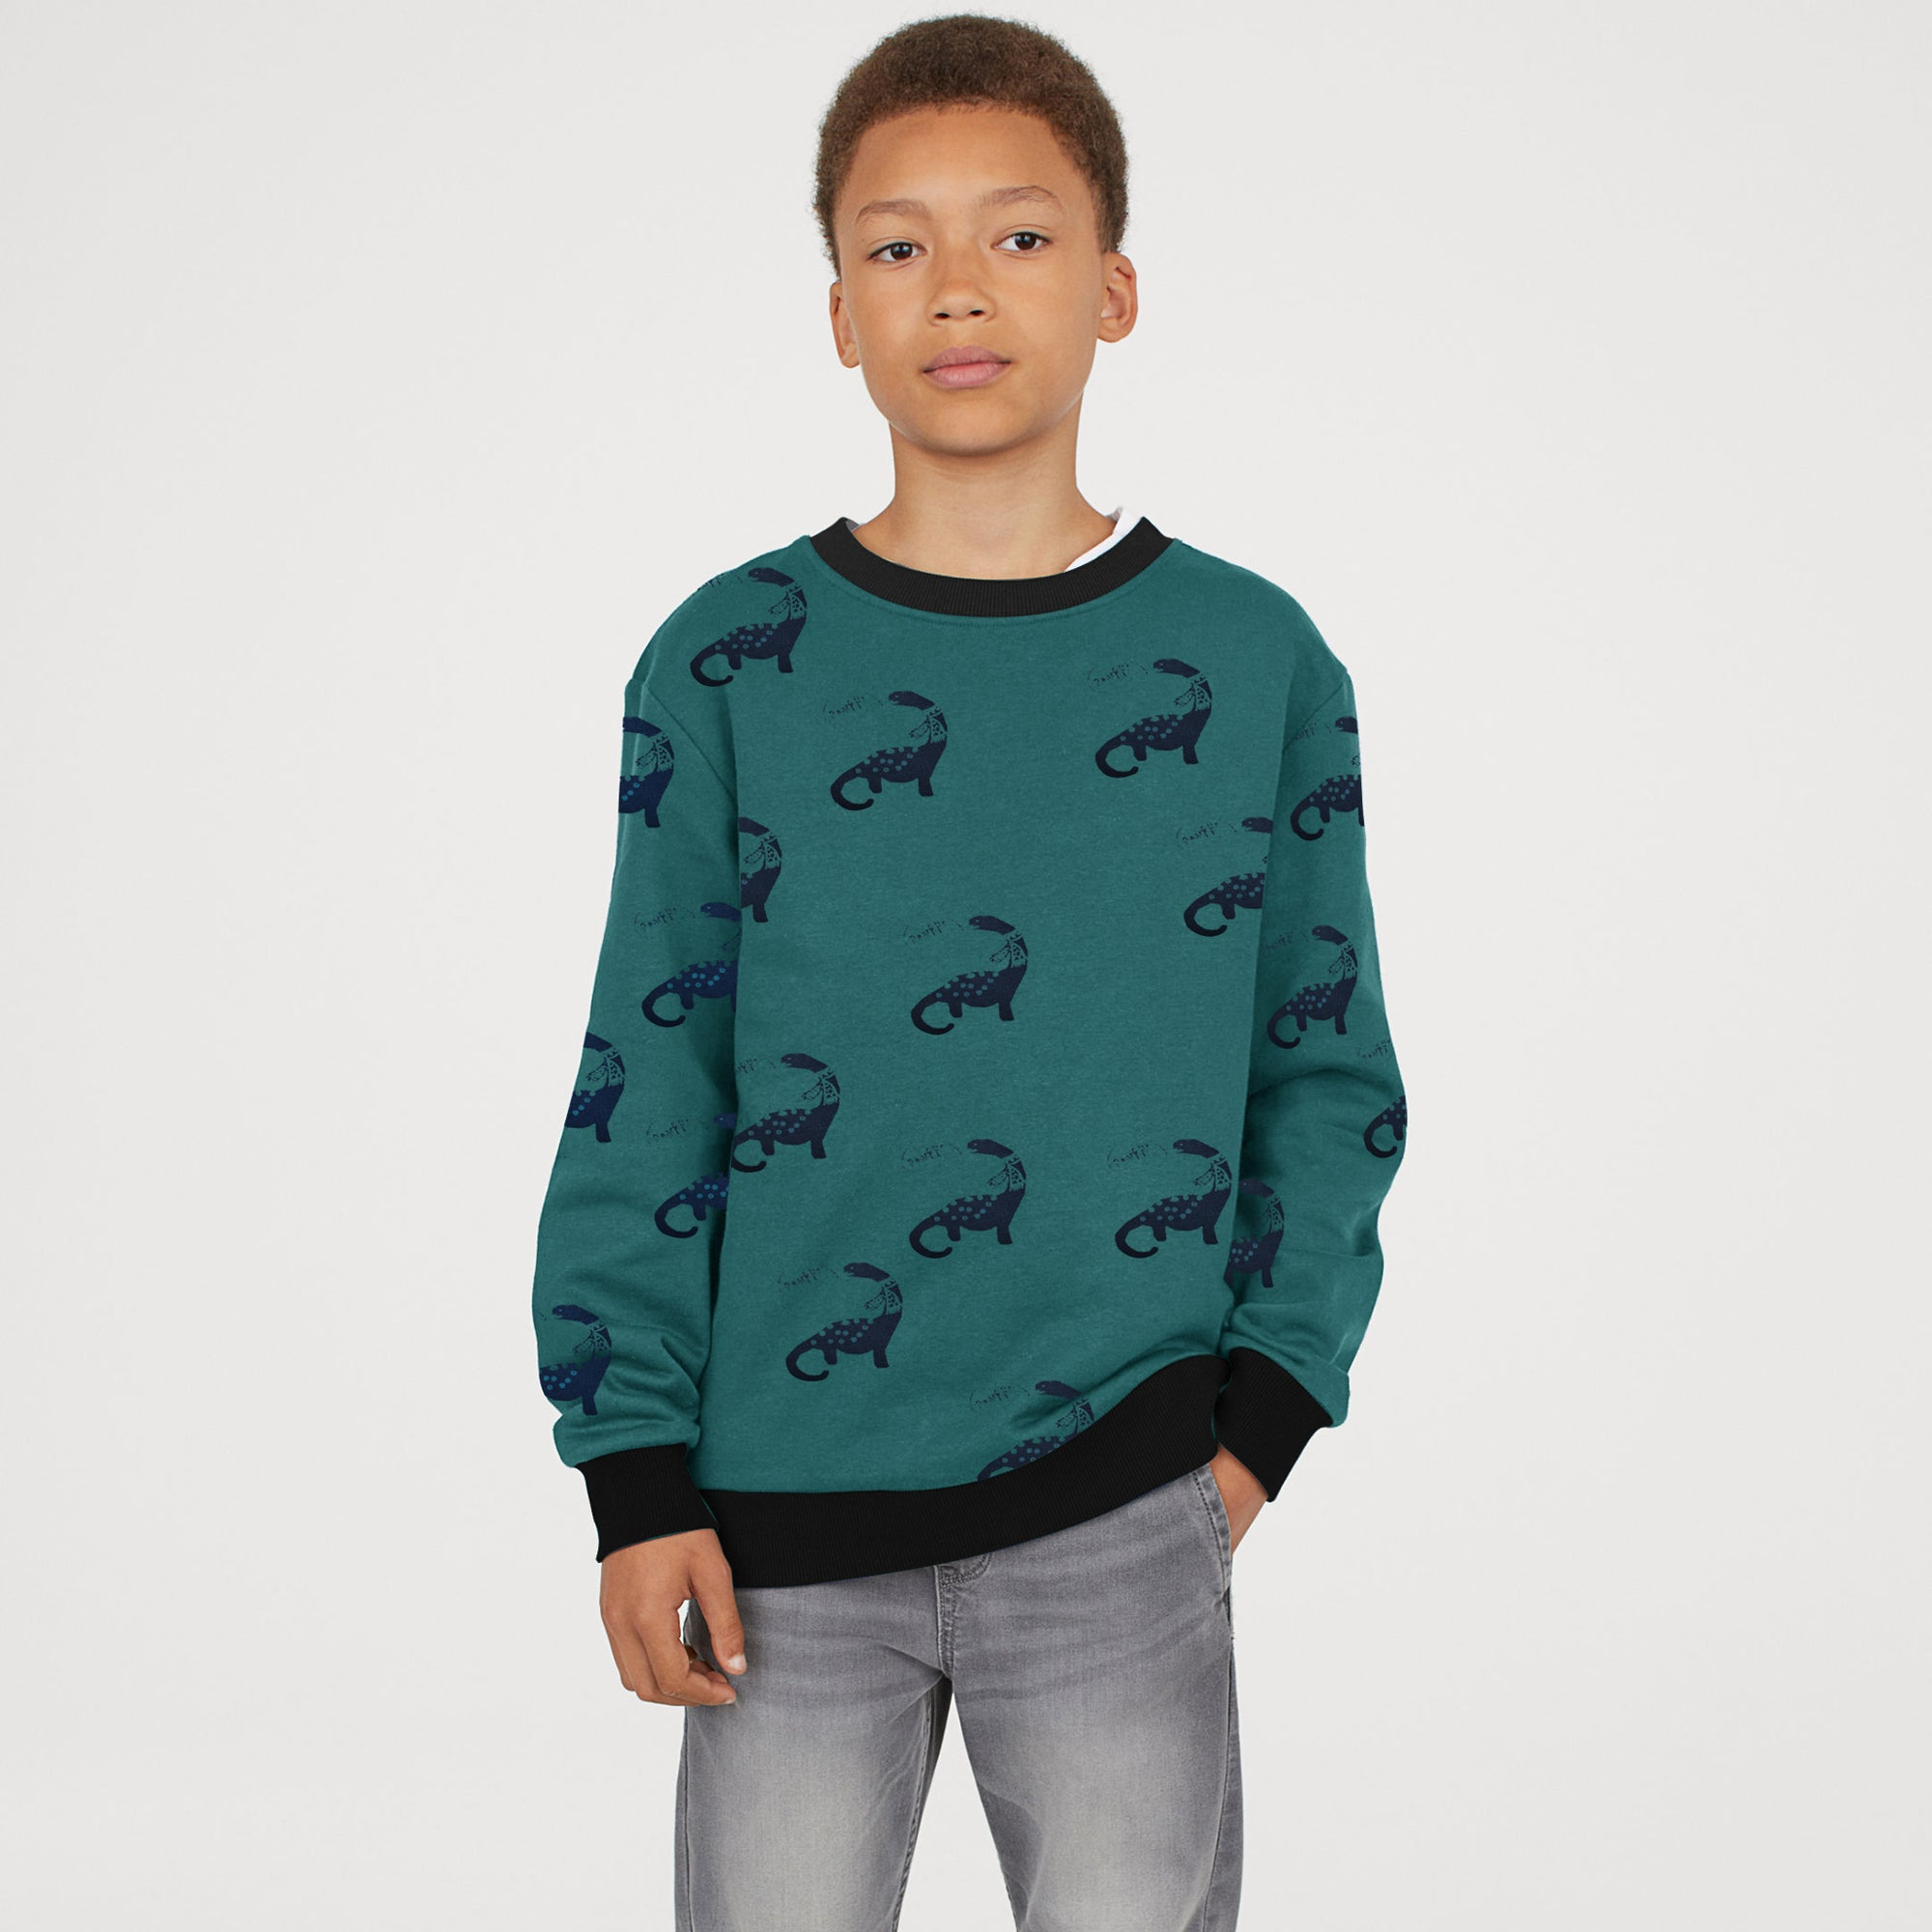 Tommy Hilfiger Terry Fleece Crew Neck Sweatshirt For Kids-Dark Cyan With Print-SP725